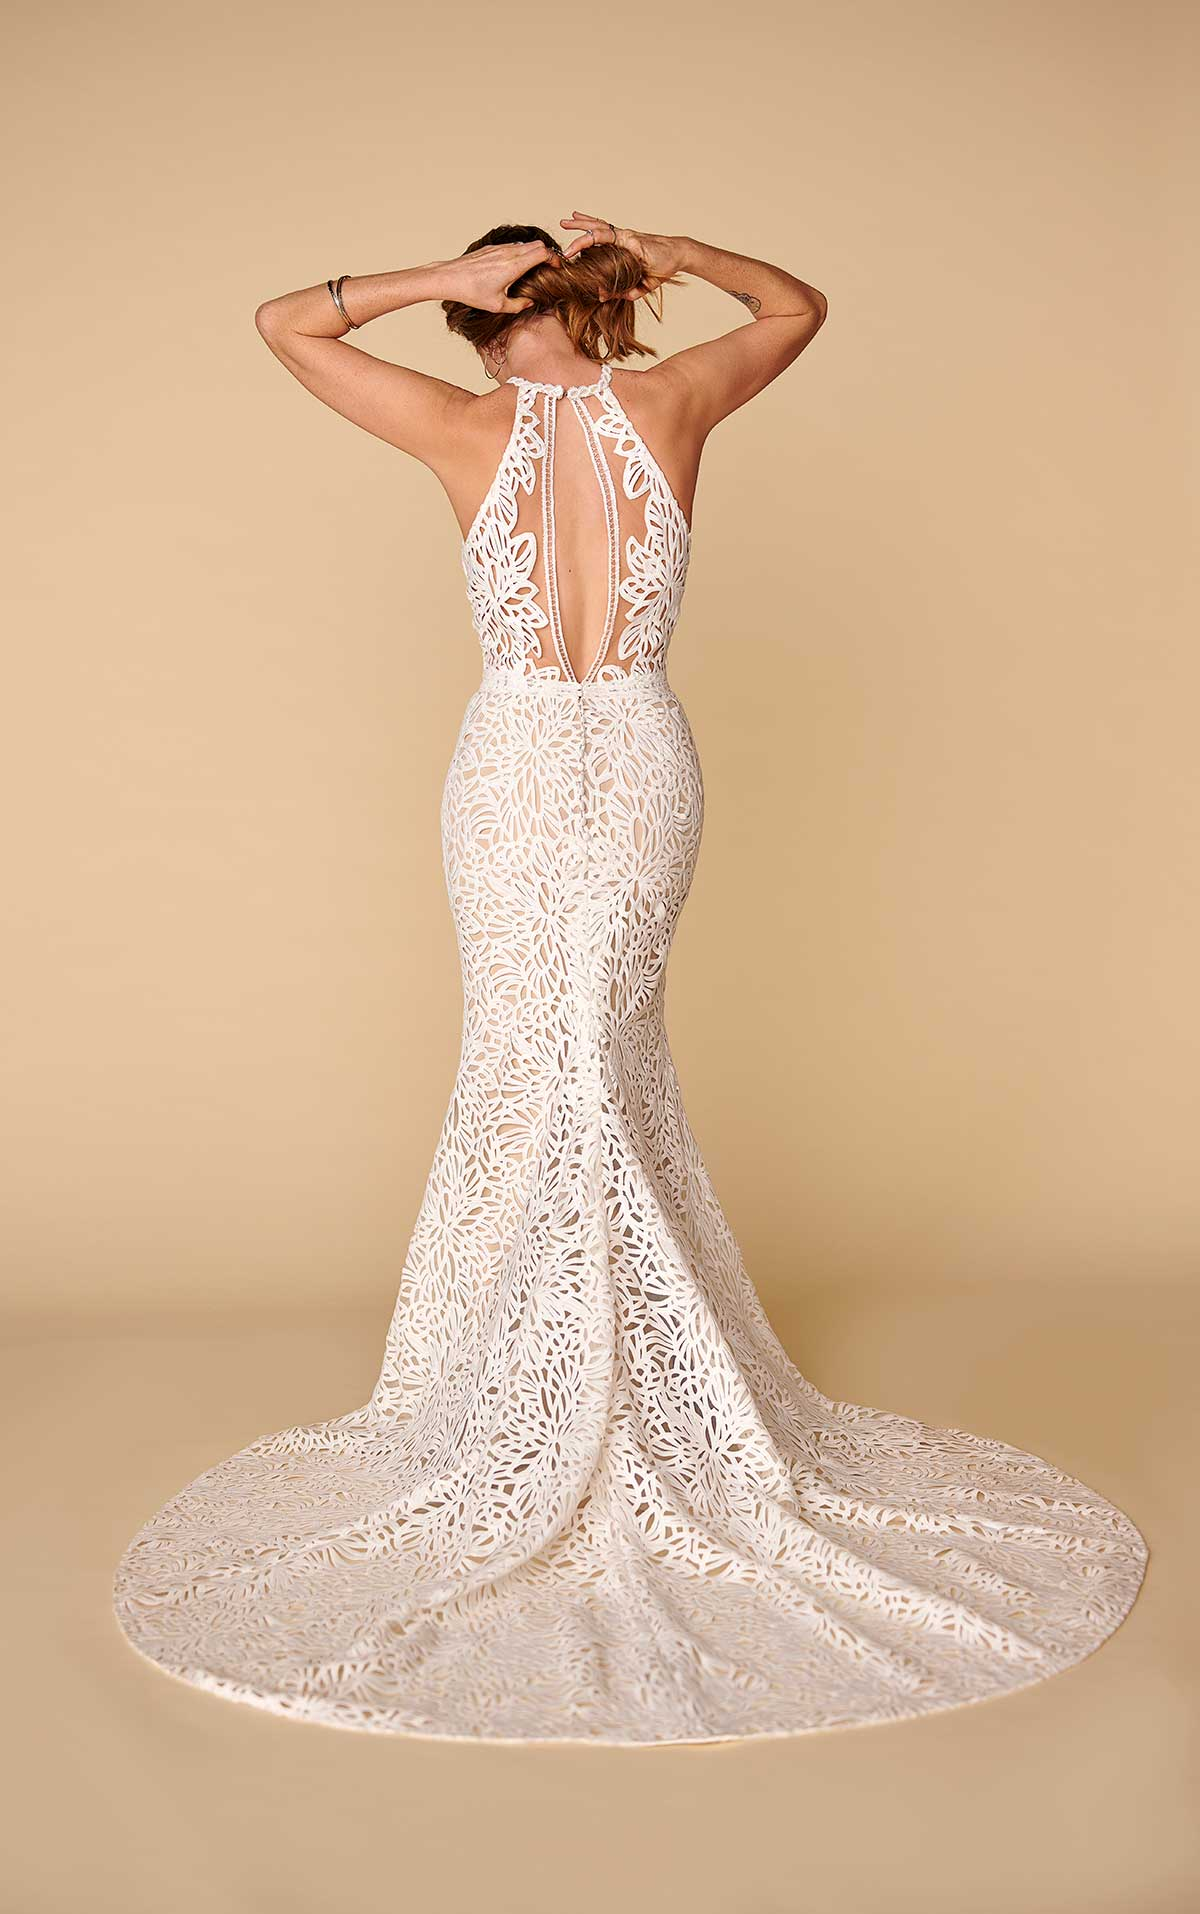 Glamorous All Who Wander Wedding Dresses for the Free Spirited Bride